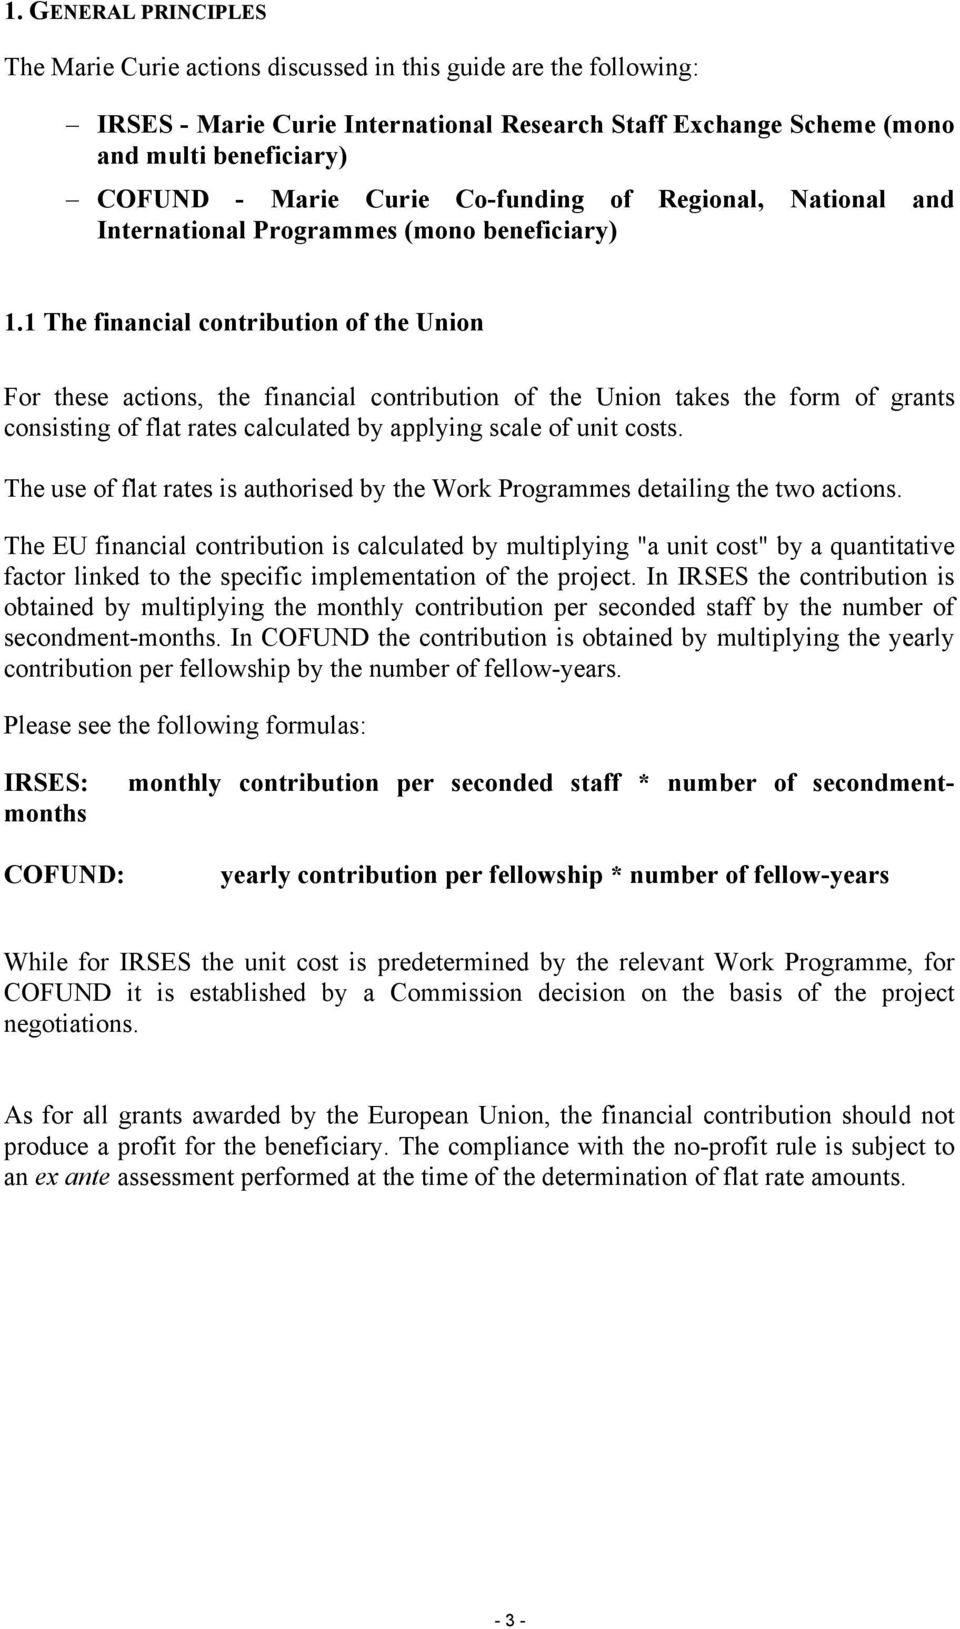 1 The financial contribution of the Union For these actions, the financial contribution of the Union takes the form of grants consisting of flat rates calculated by applying scale of unit costs.